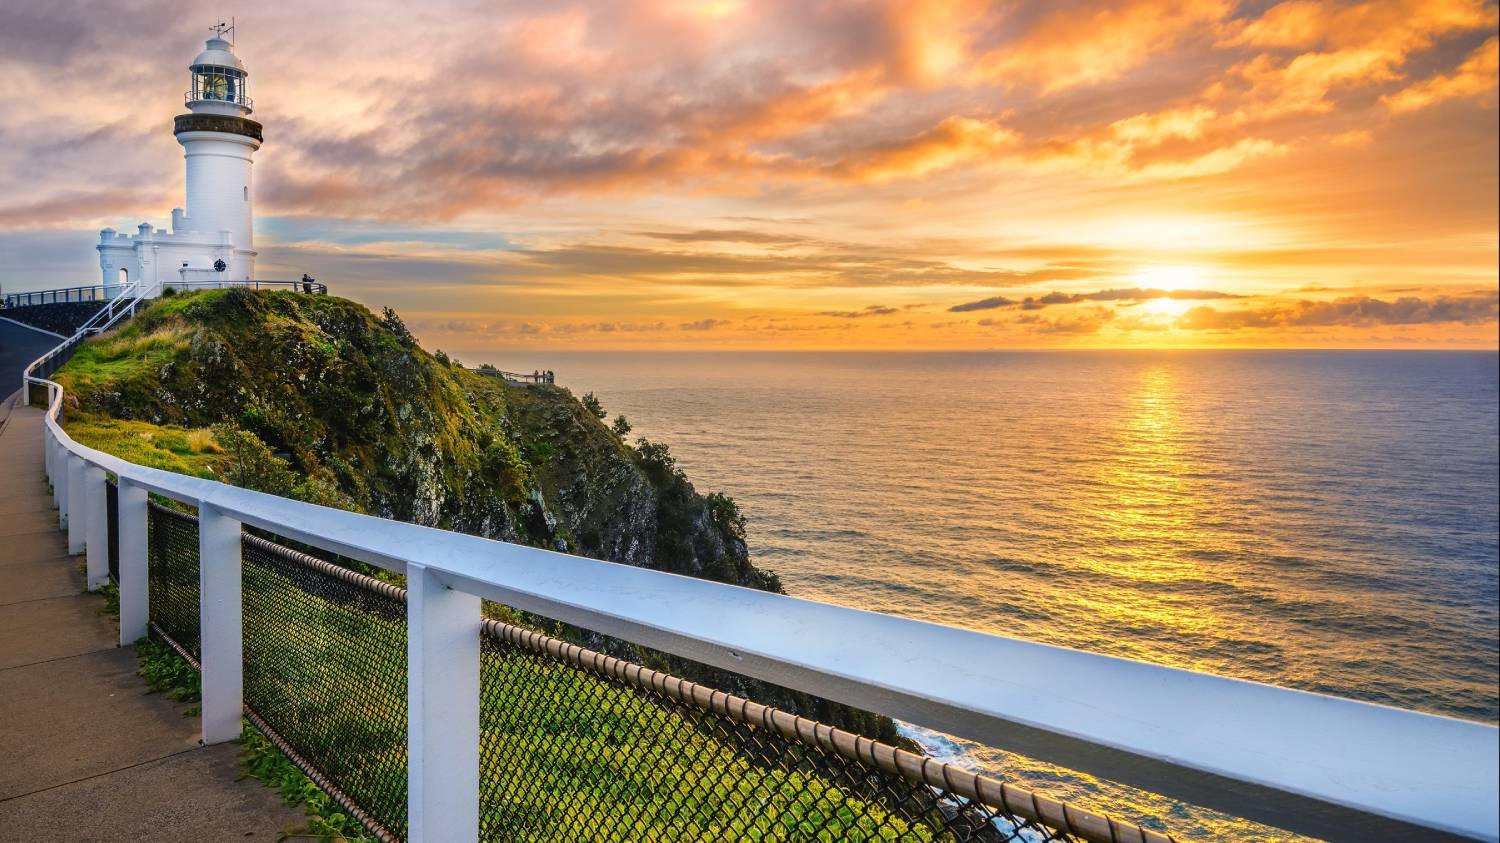 Byron Bay - Things To Do On The Gold Coast